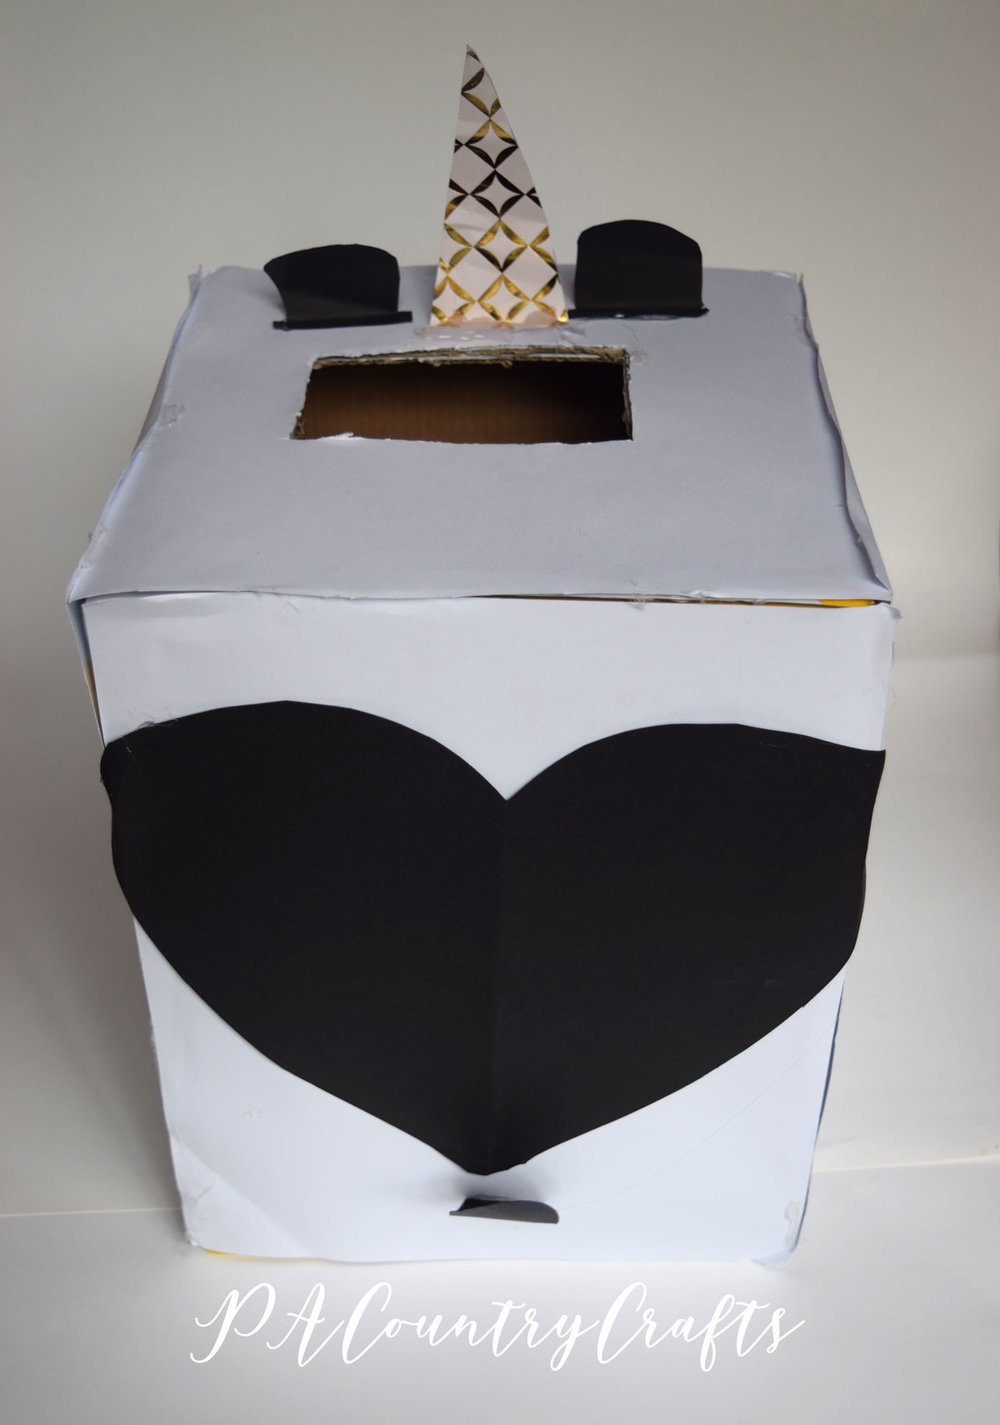 Panda valentine box made by kids!